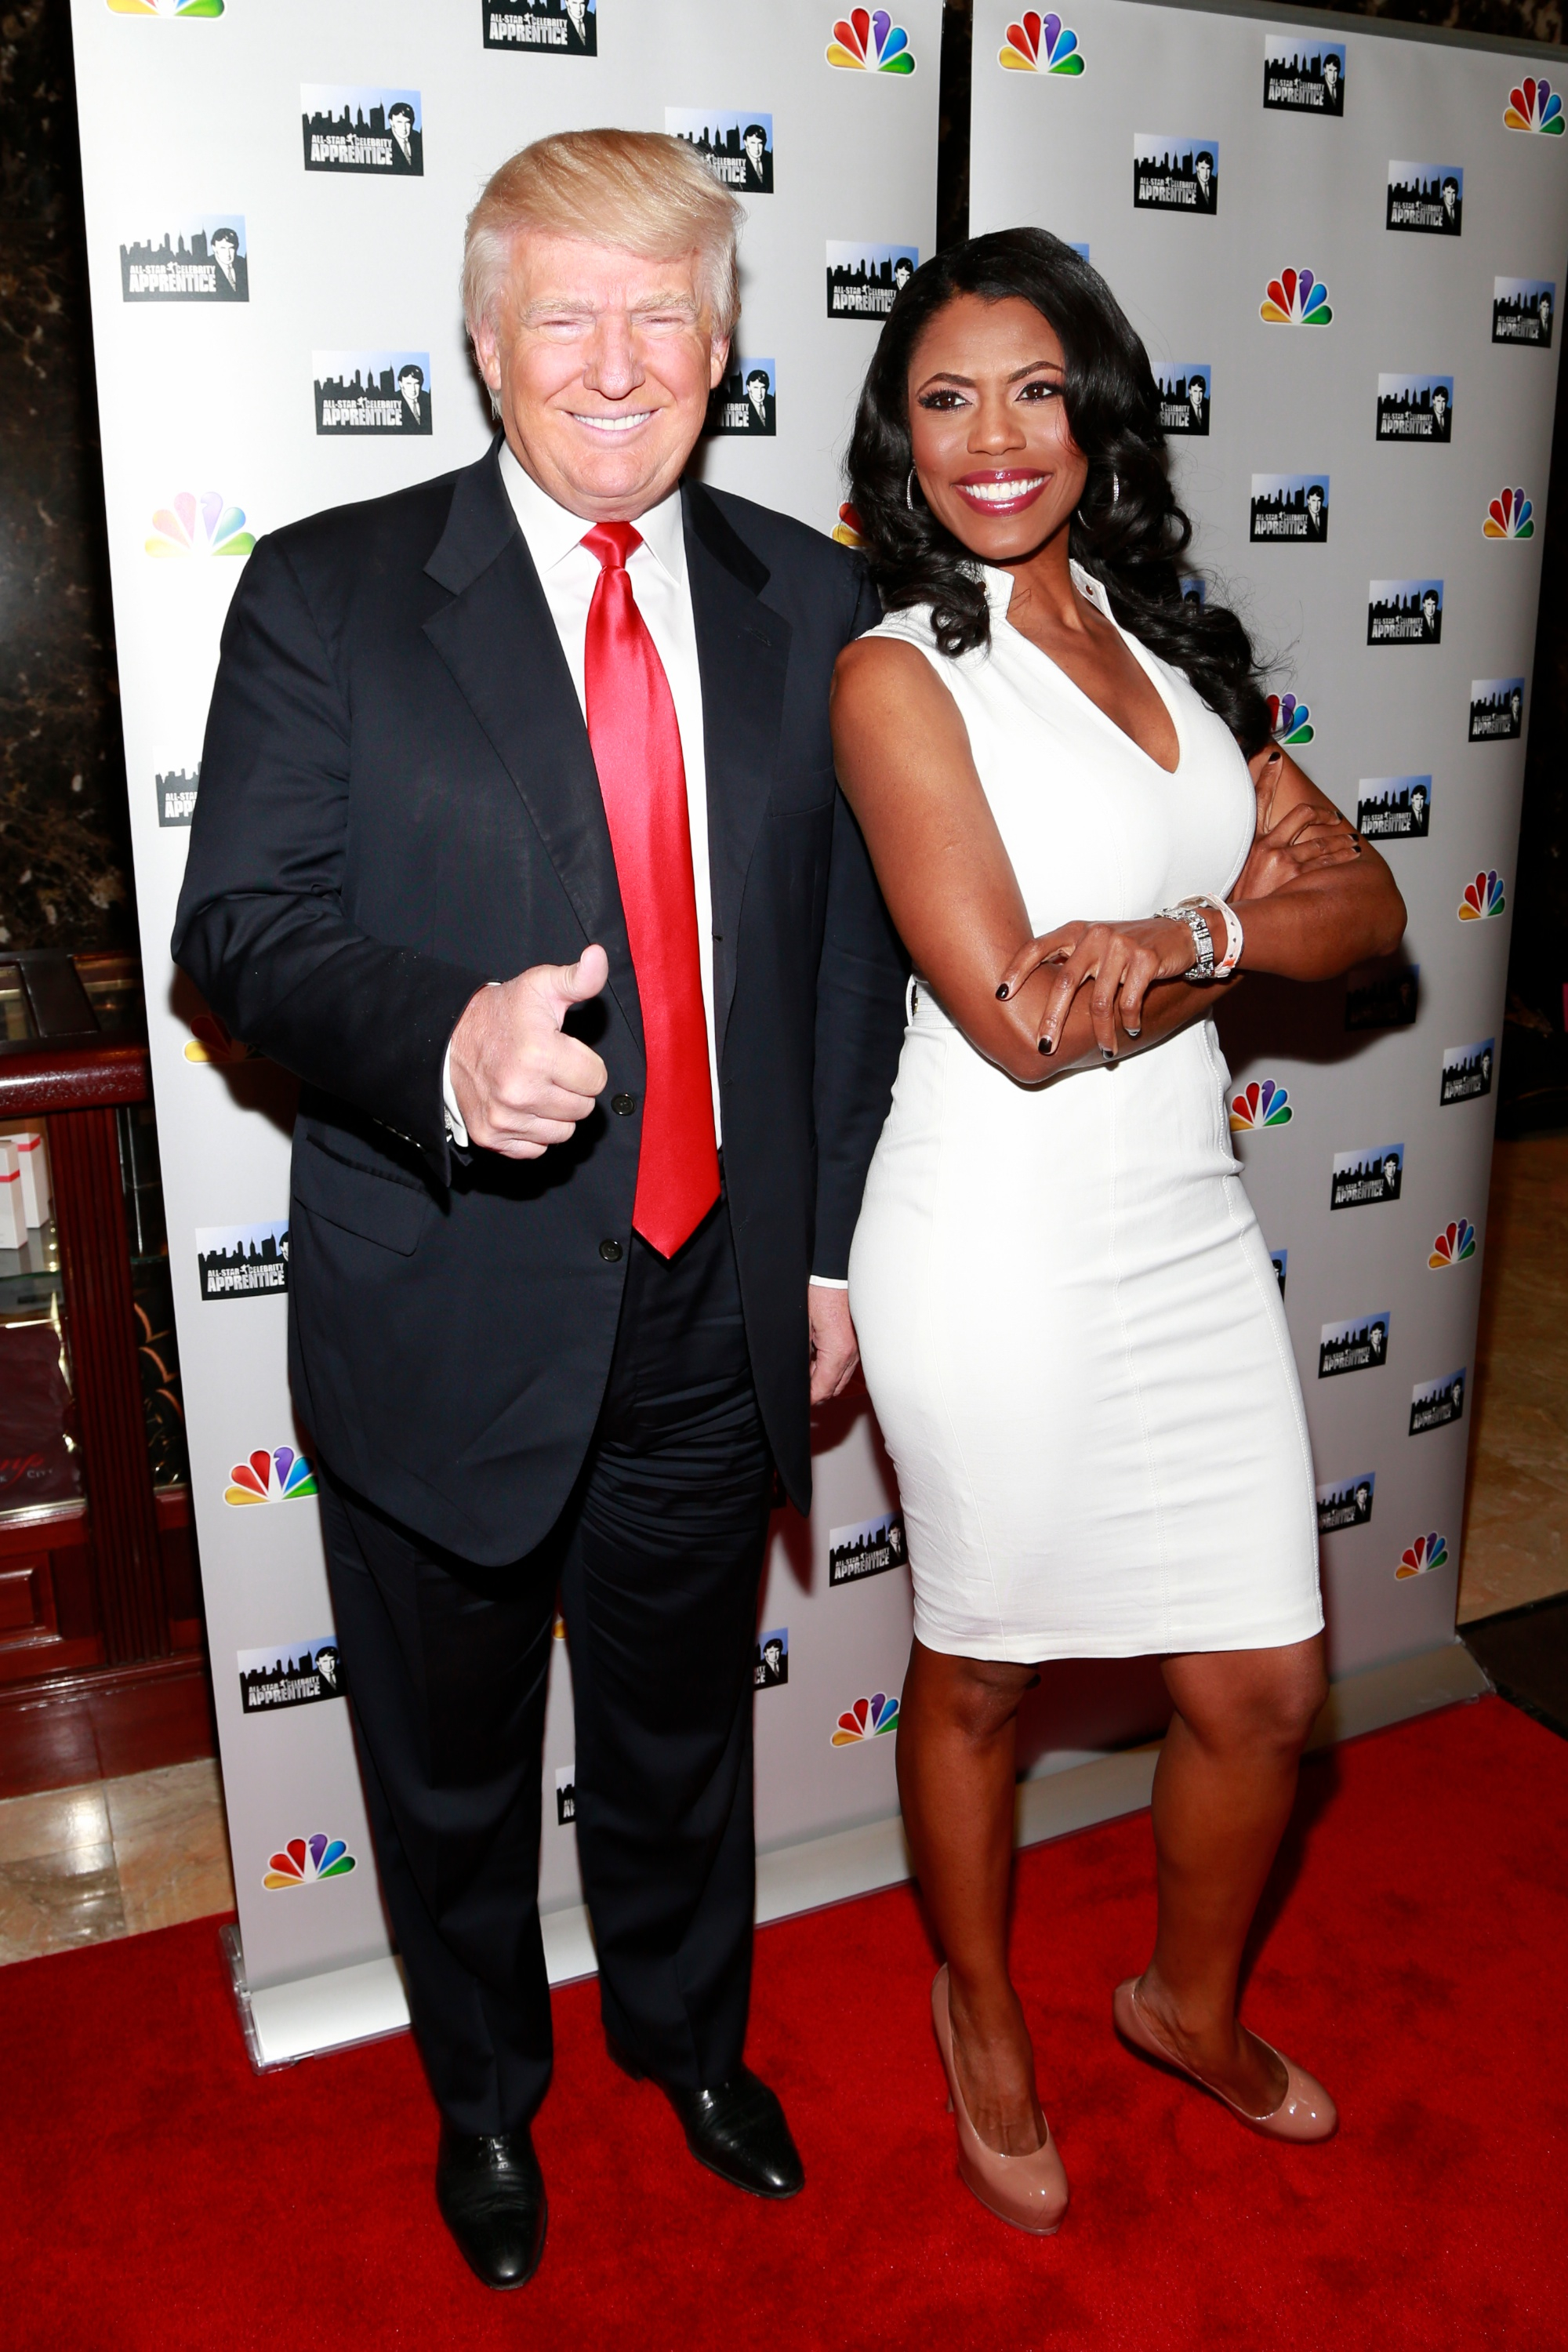 Omarosa Manigault naked (85 pictures) Erotica, Twitter, cleavage